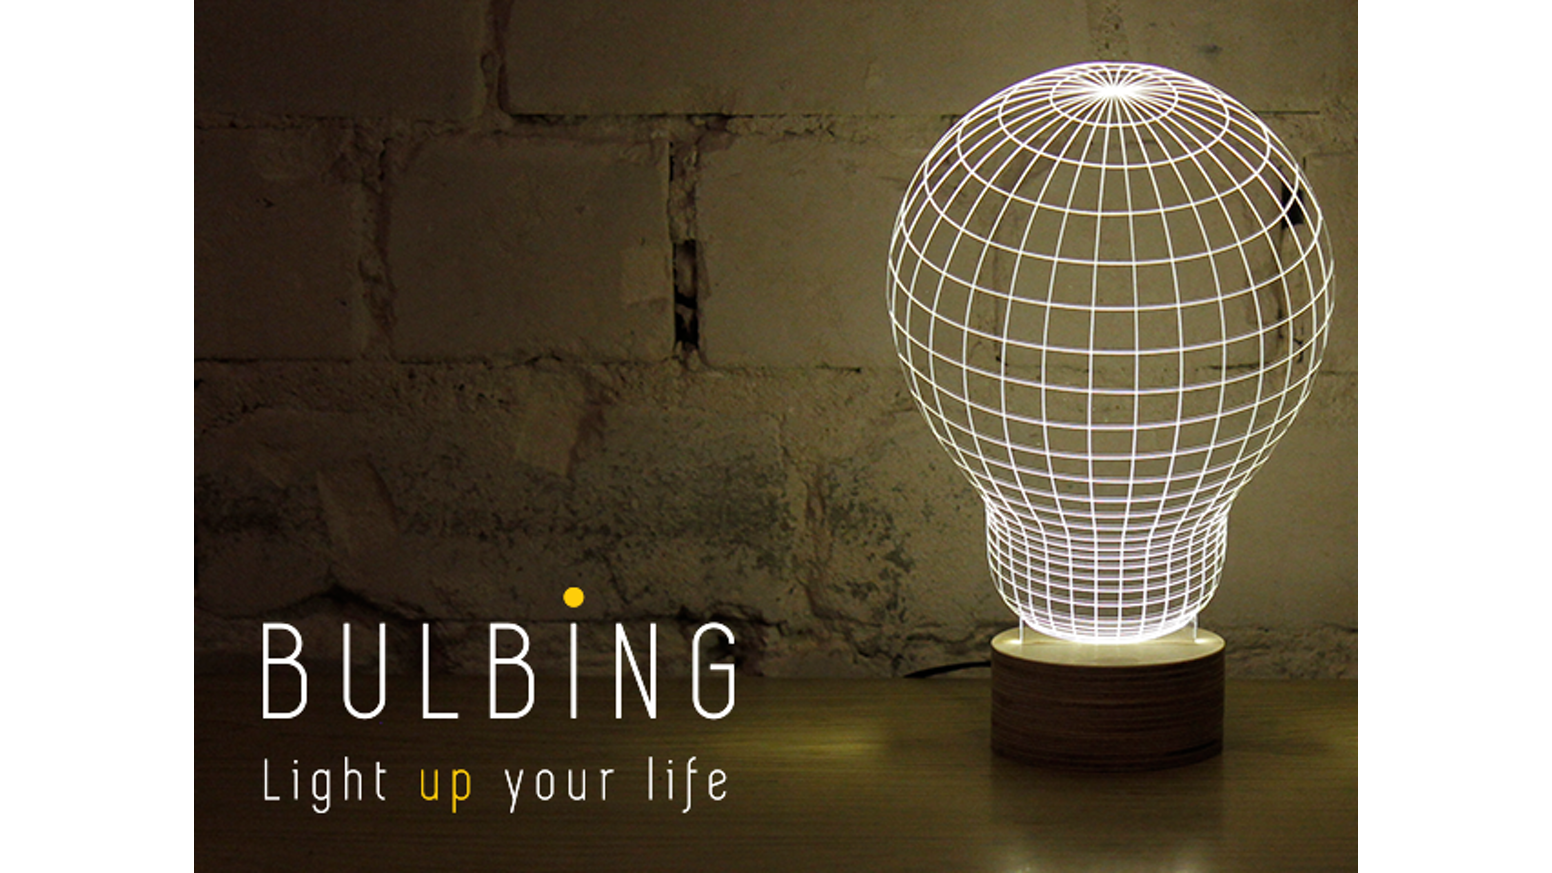 Led night light kickstarter - Bulbing Is An Optical Illusion Versatile Led Lamp That Tricks Your Eye And Challenges Your Mind